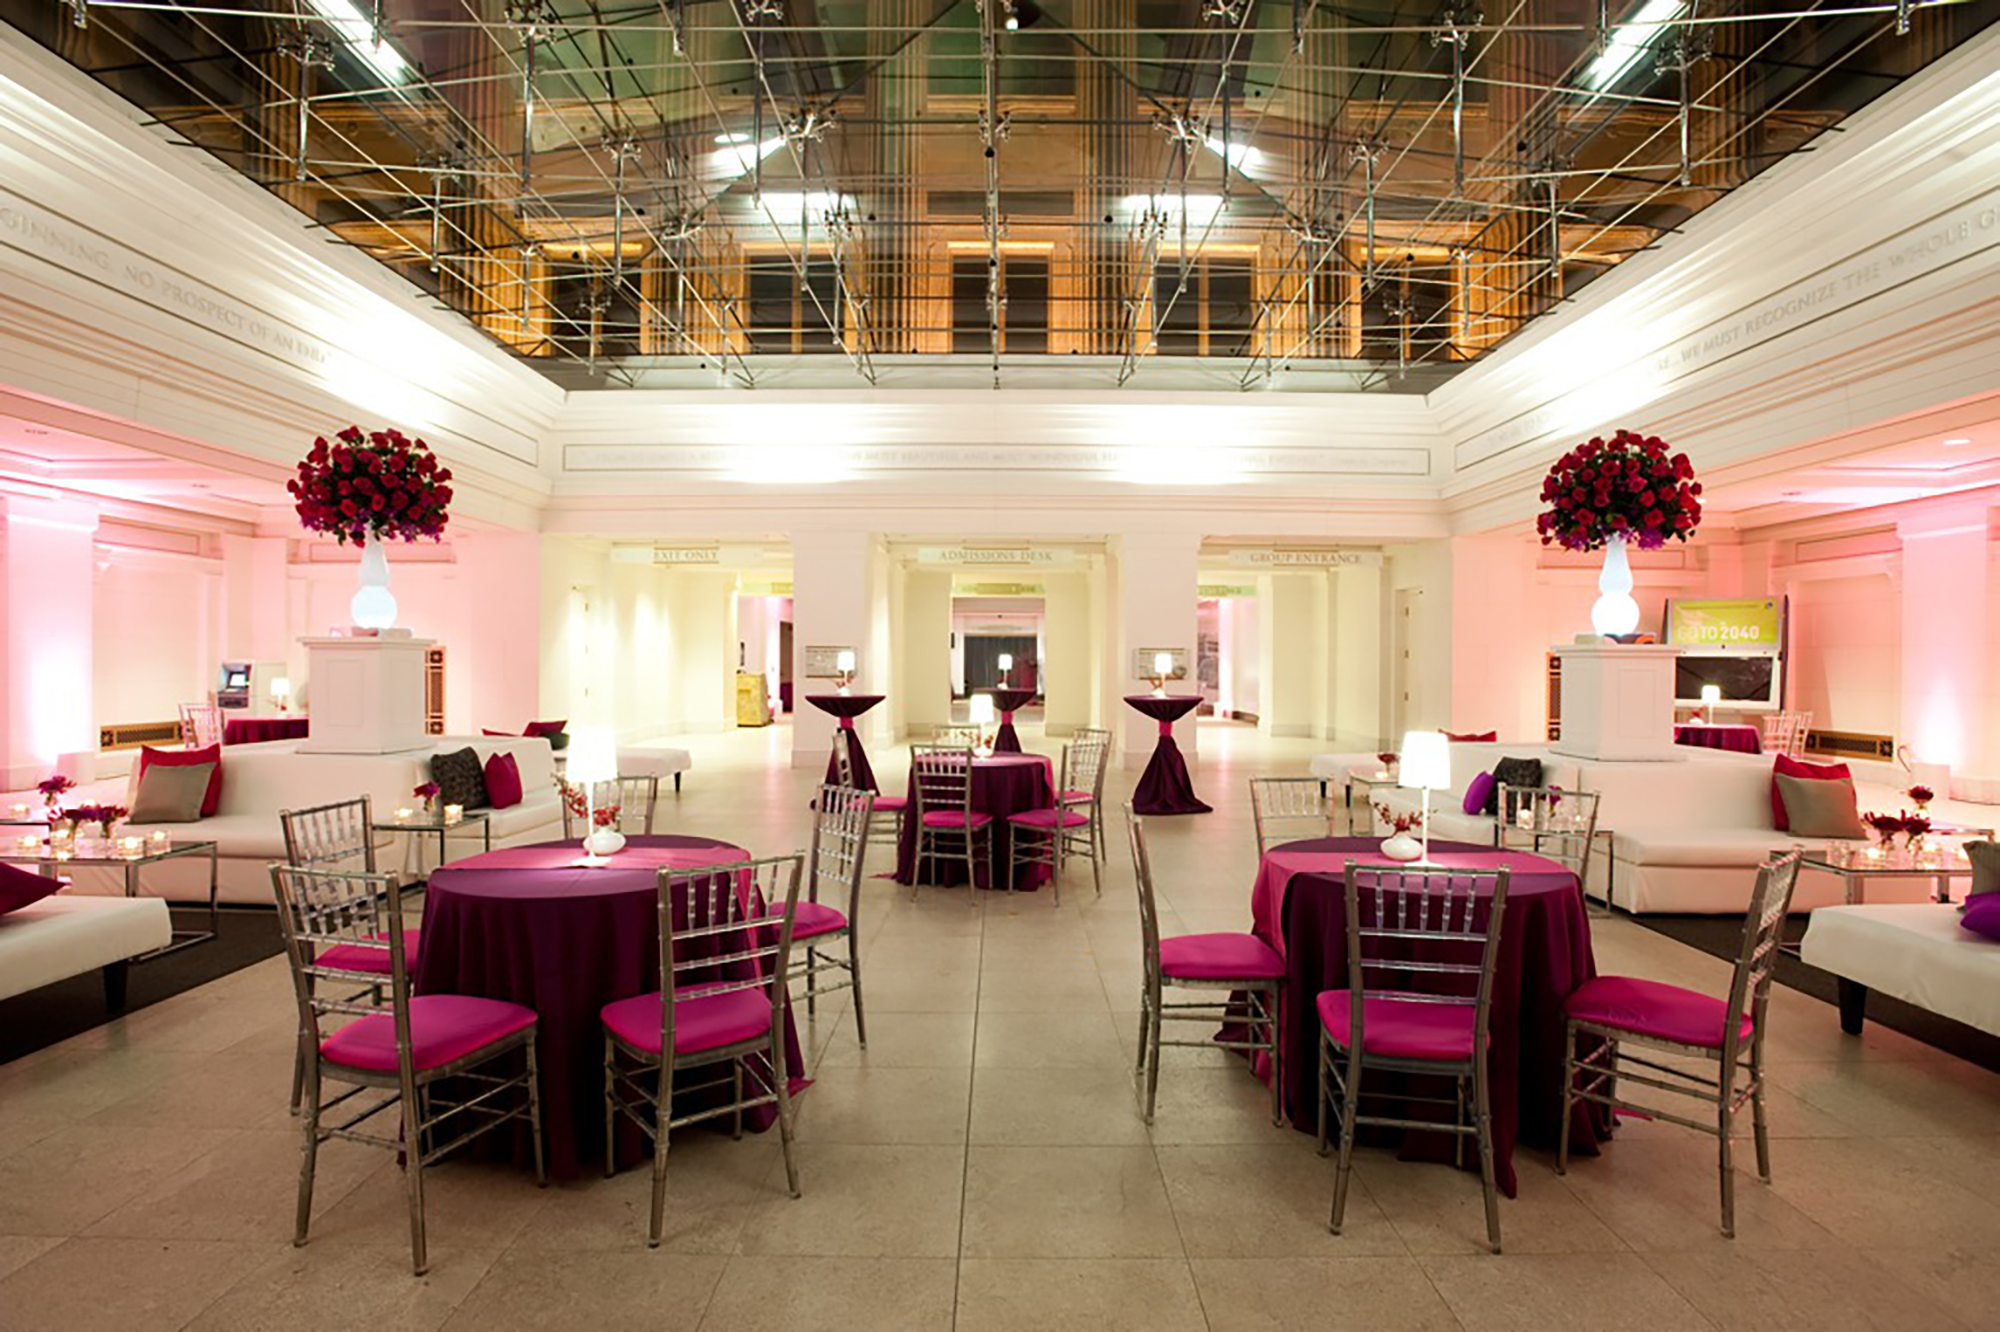 East Atrium space set up for an event with tall cocktail tables, small tables with five chairs eat, and white couches. Floral arrangements sit on while pillars behind the couches. A glass ceiling reveals the east facade of the Field Museum at night.